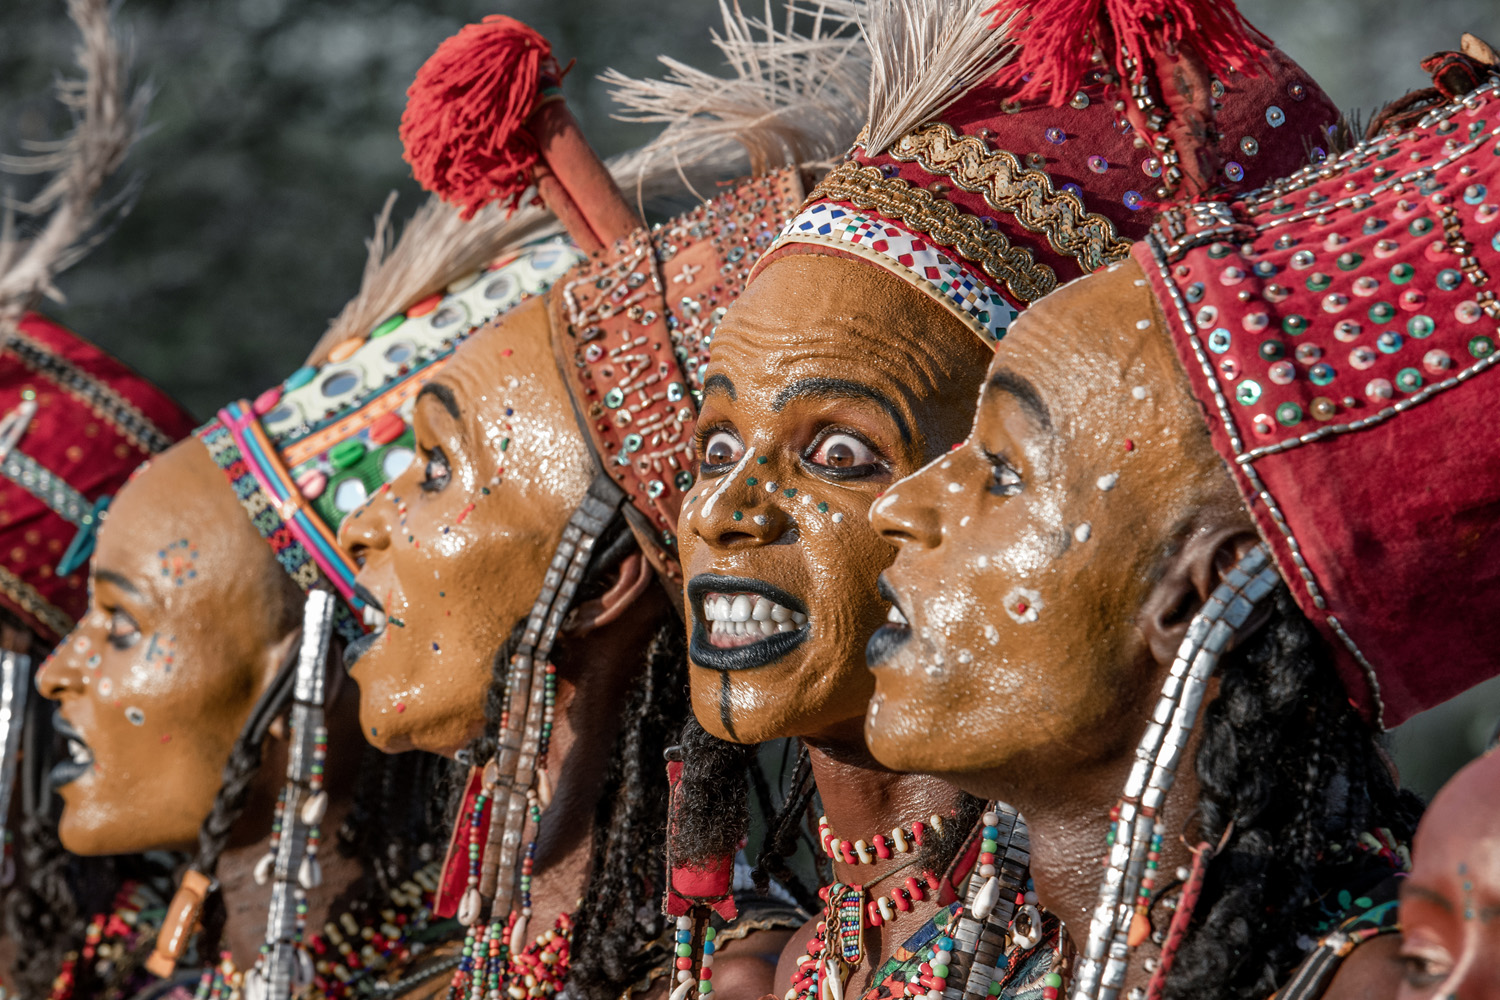 Tribesmen with painted faces